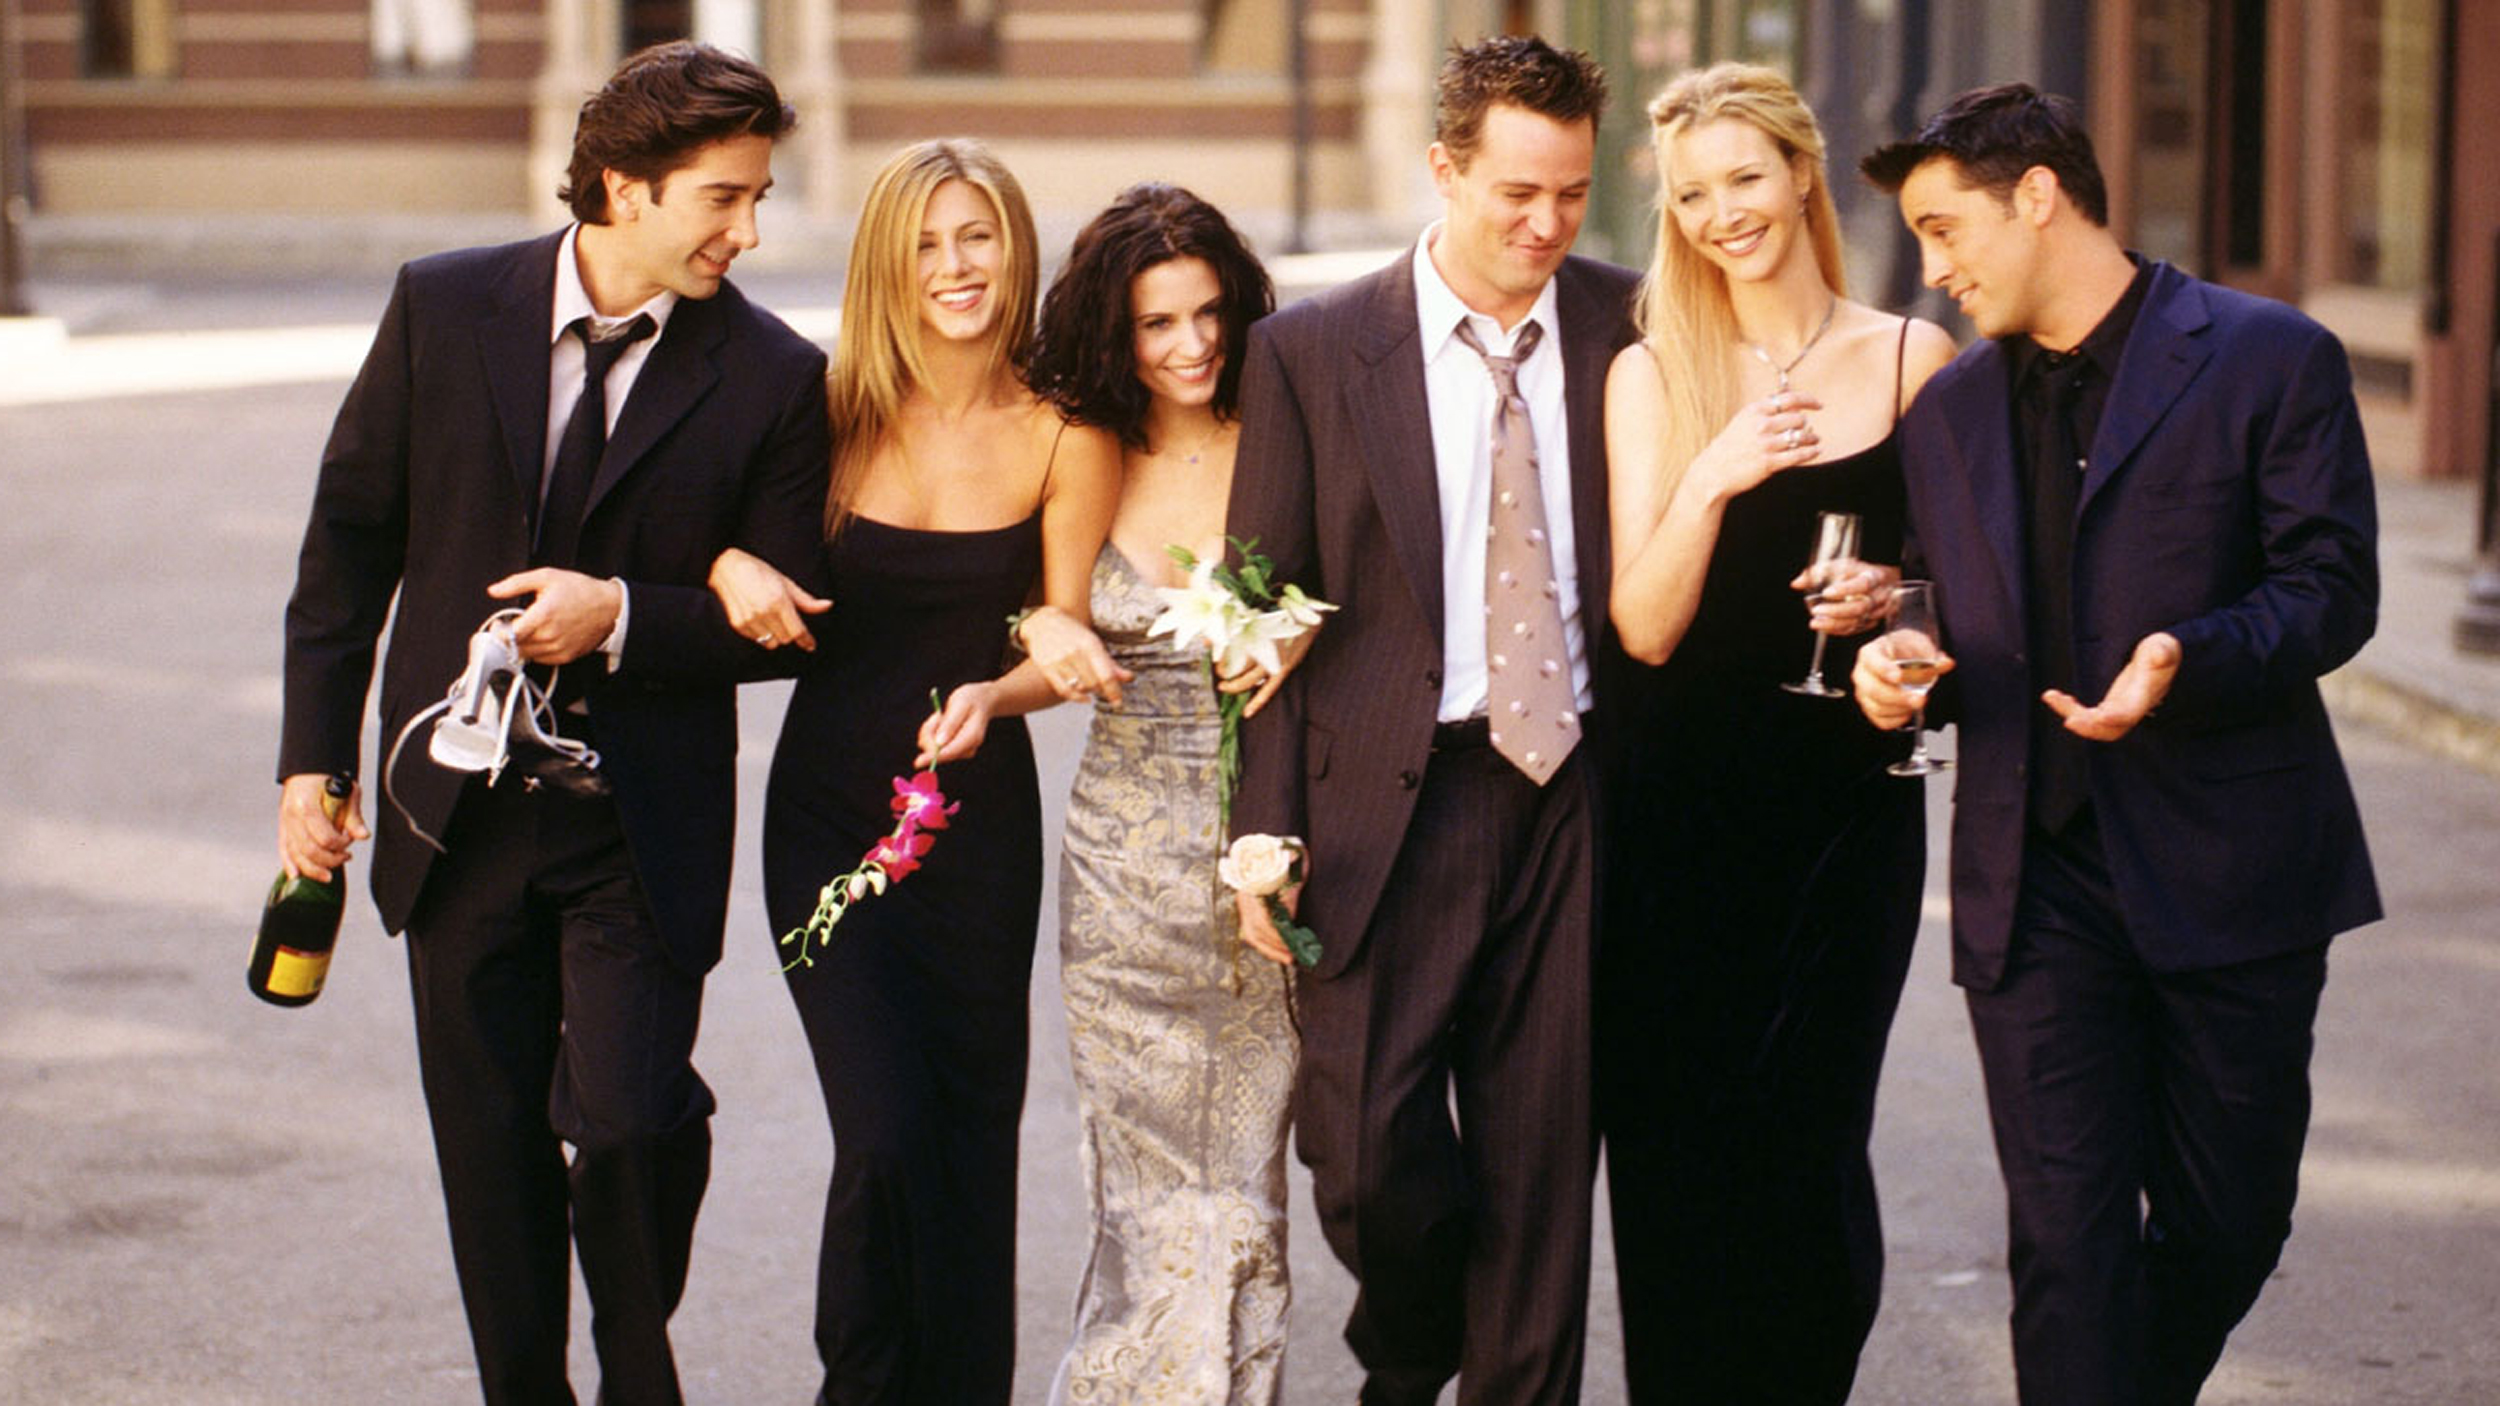 This is the TV special that finally got the whole cast of 'Friends' to reunite